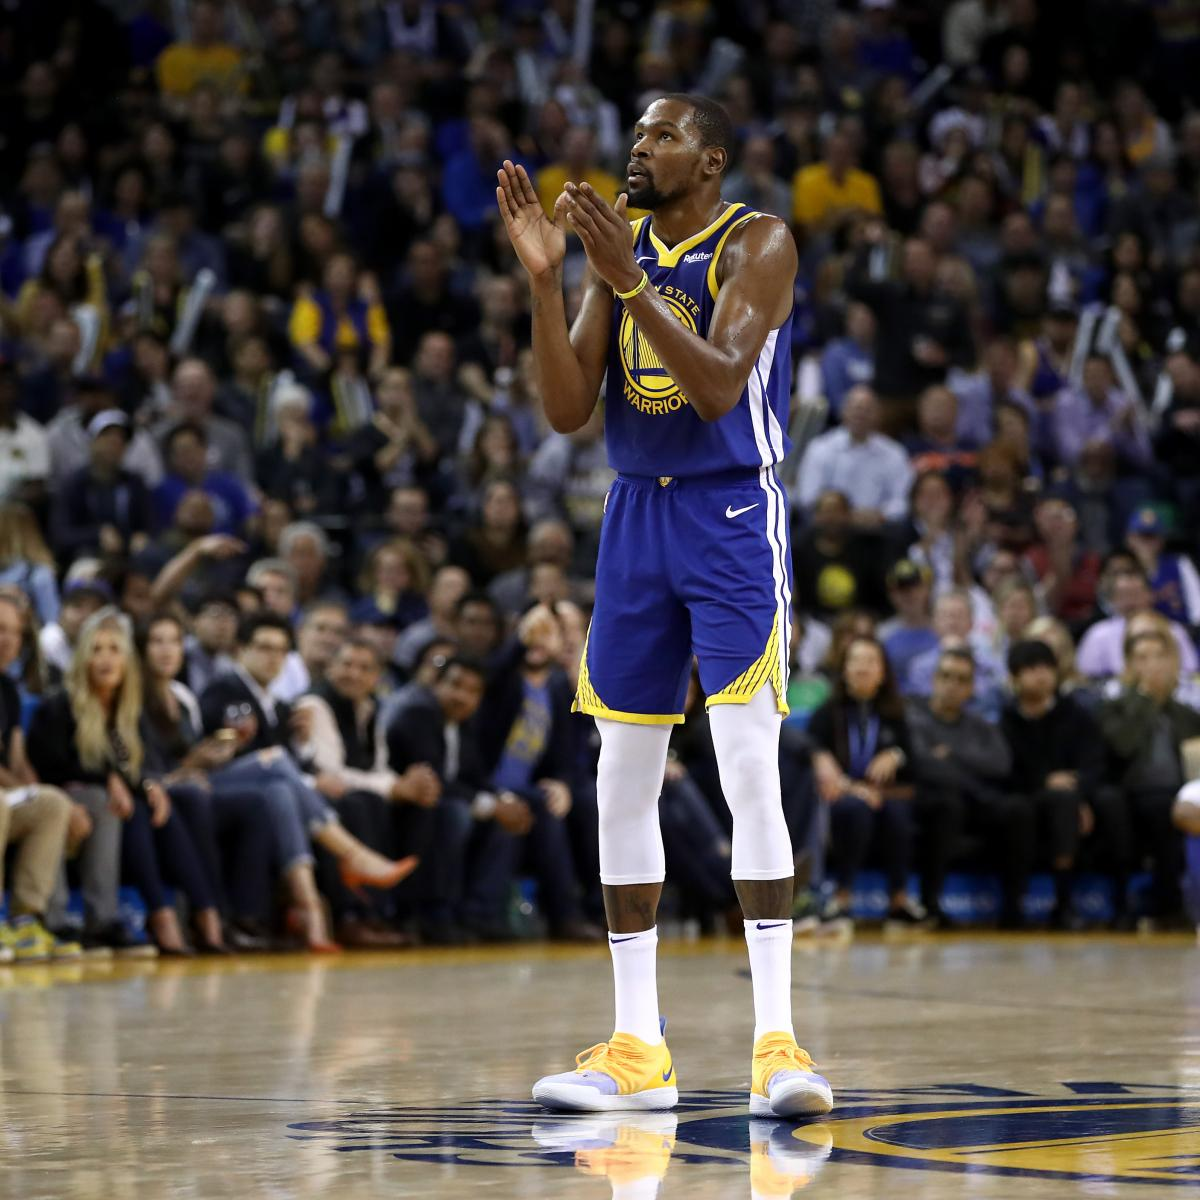 Warriors Come Out To Play Bleacher Report: Video: Kevin Durant Erupts For 49 Points As Warriors Come